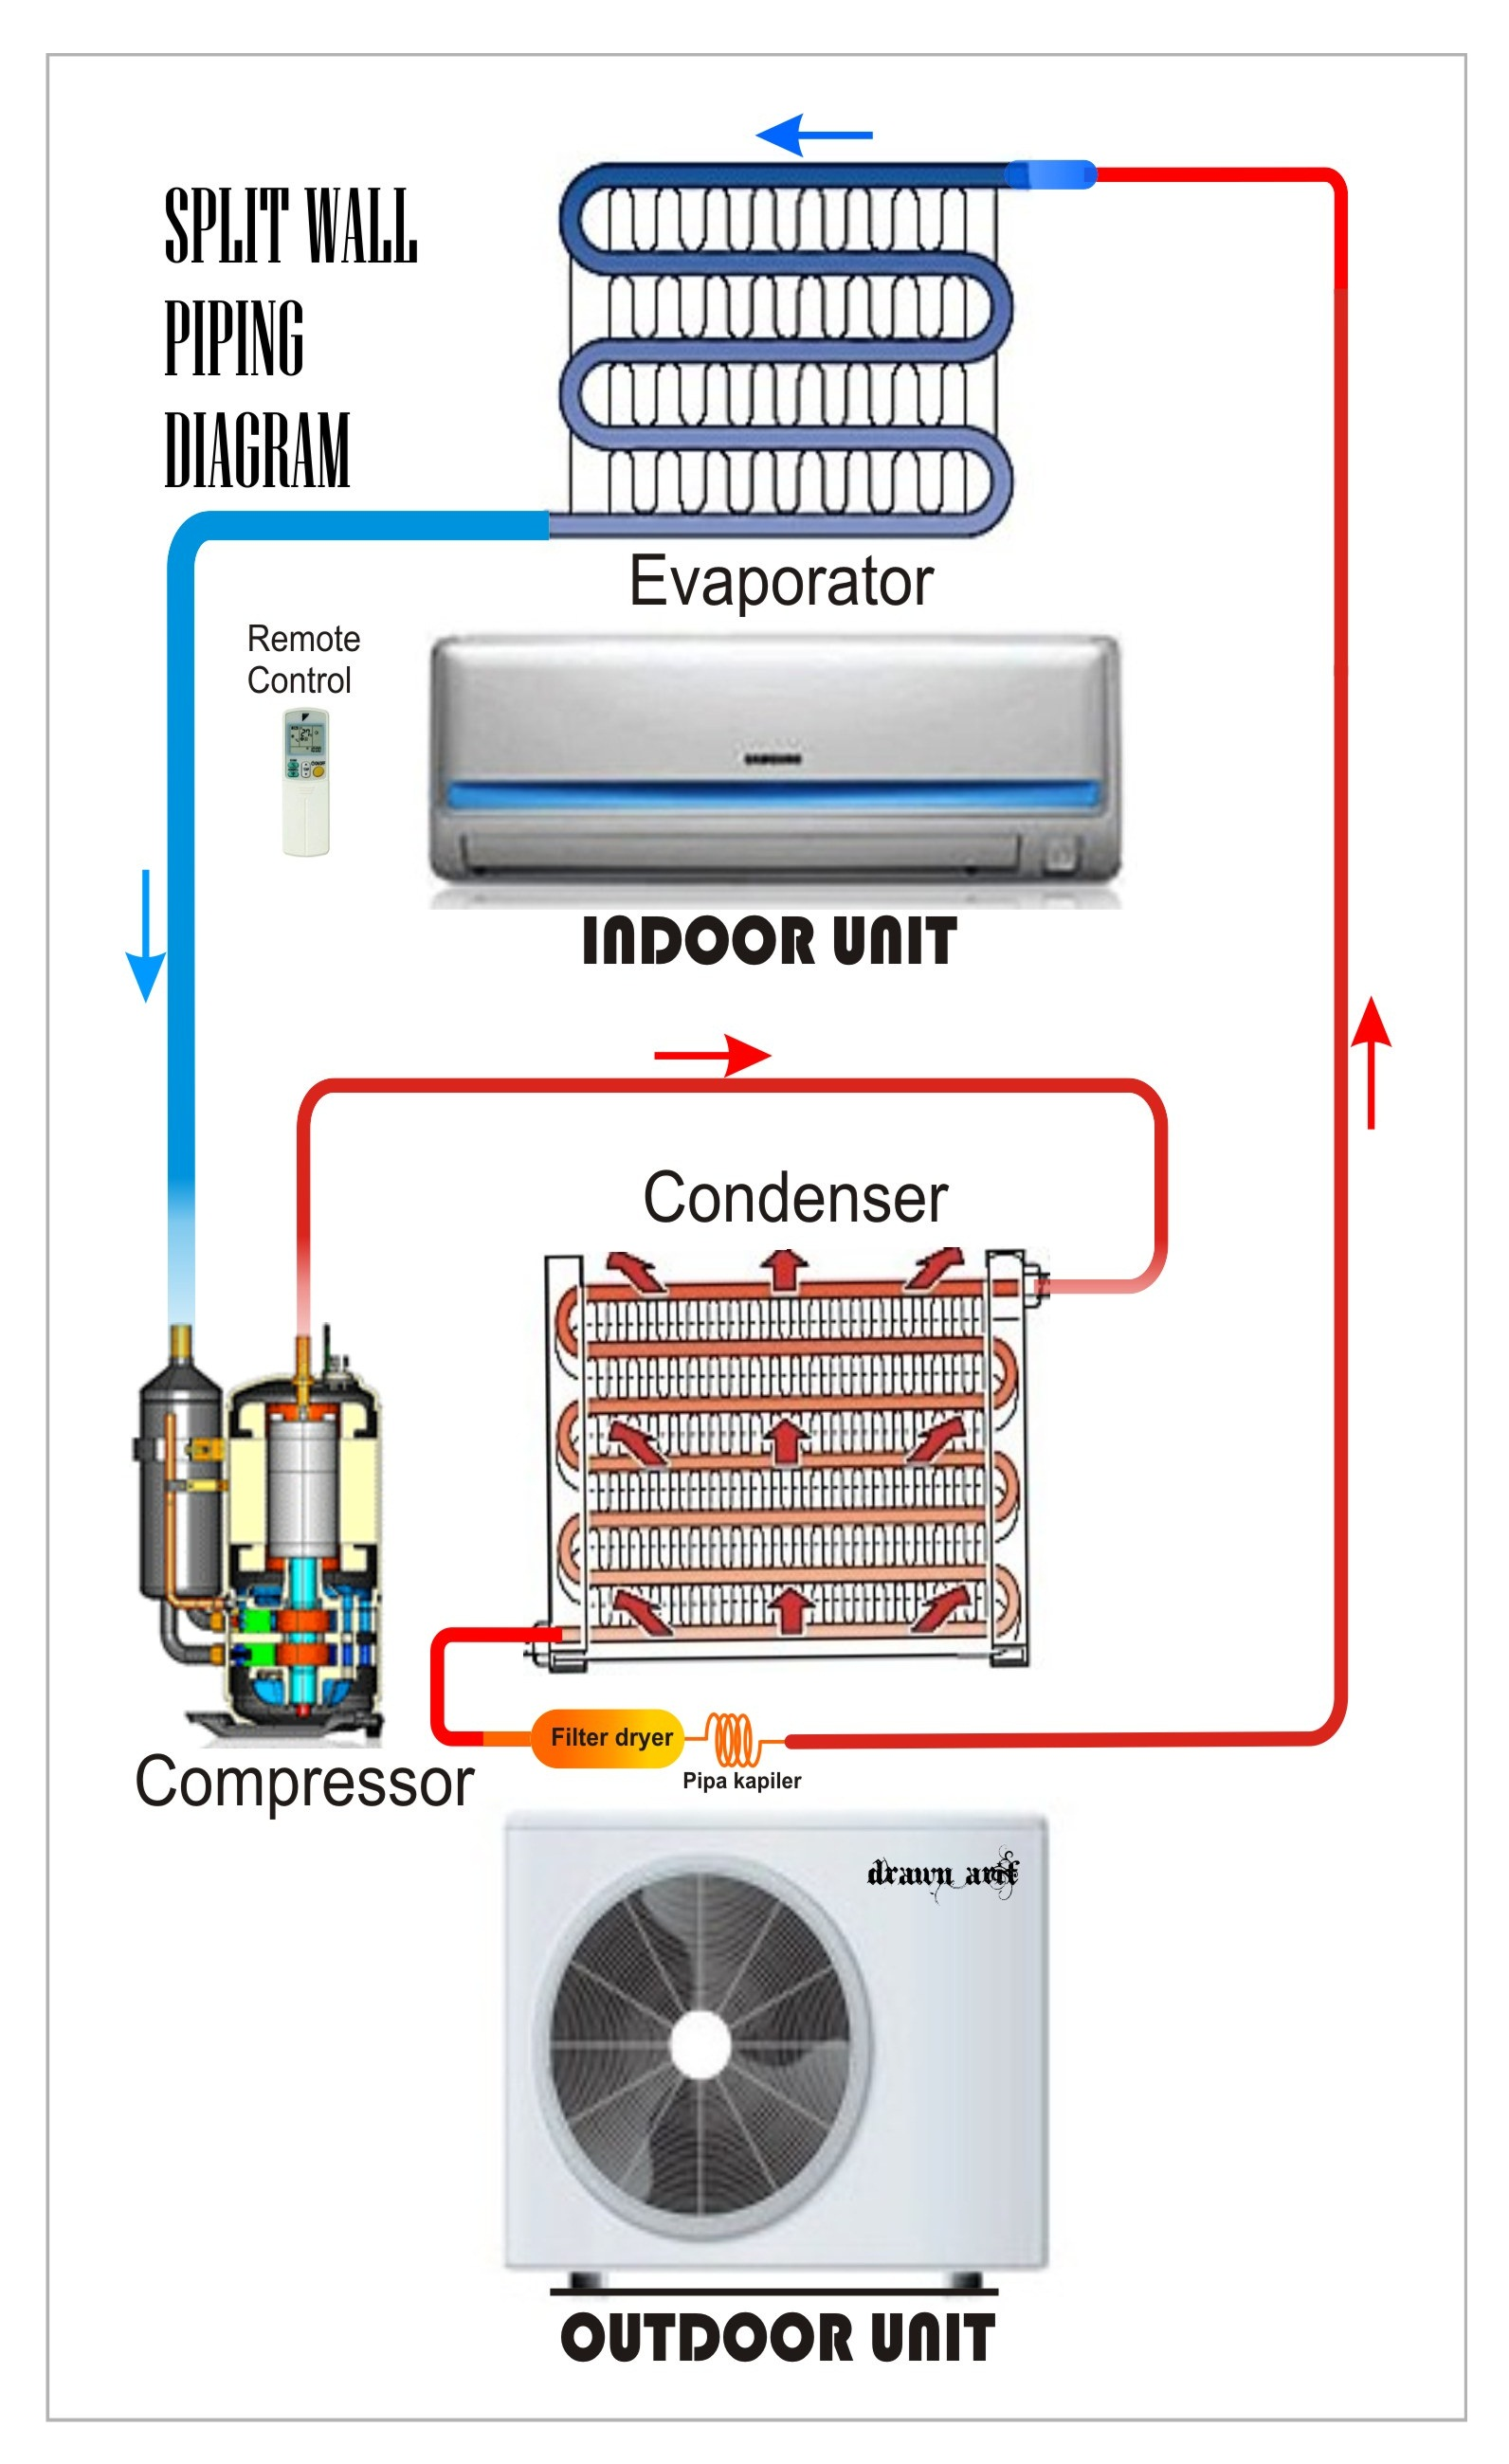 hight resolution of split wall piping diagram refrigeration air conditioning wiring diagram for a condensing unit